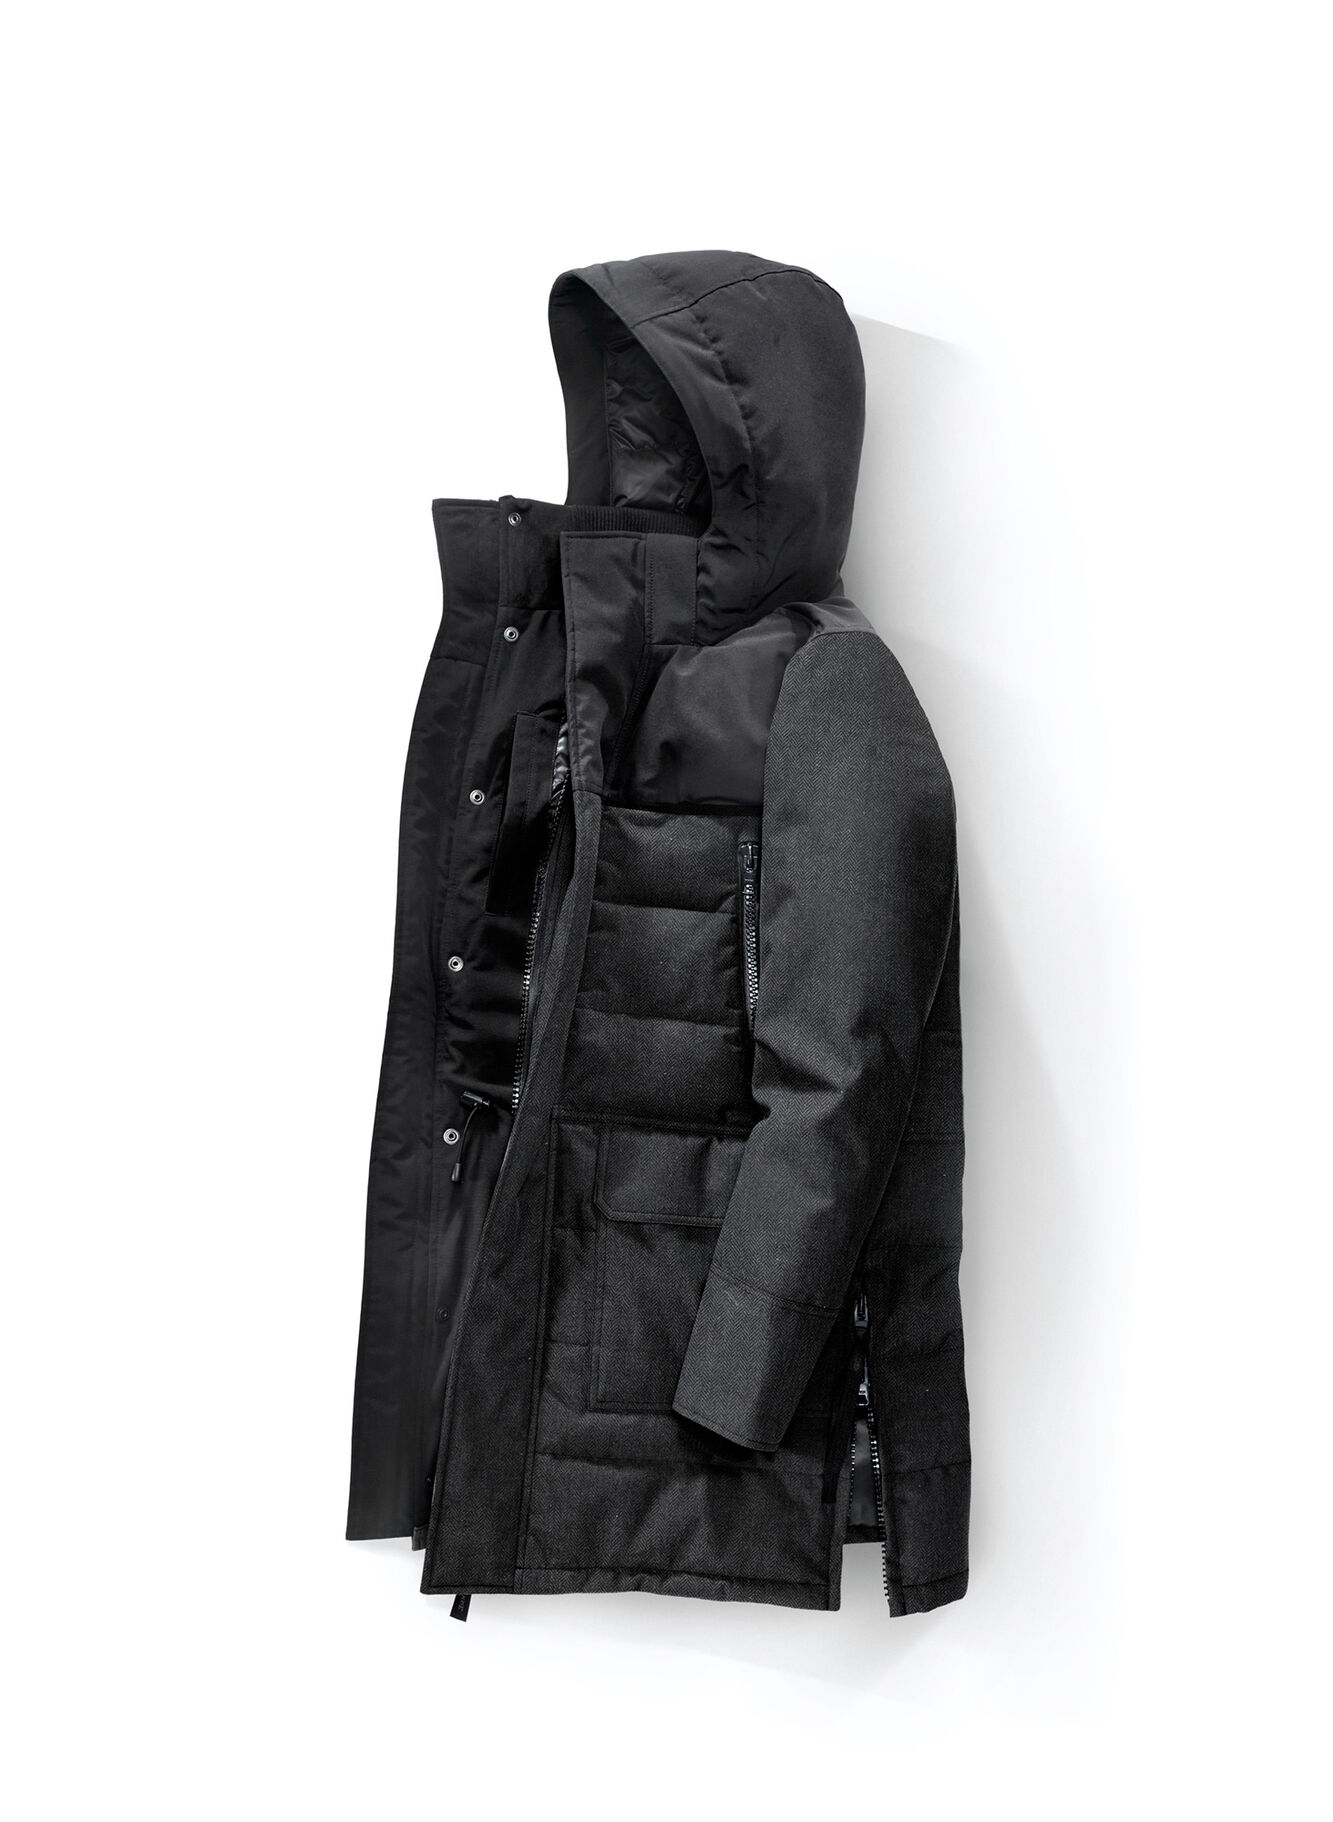 Canada Goose down sale cheap - Men's Parkas | Expedition | Mountaineer | Canada Goose?